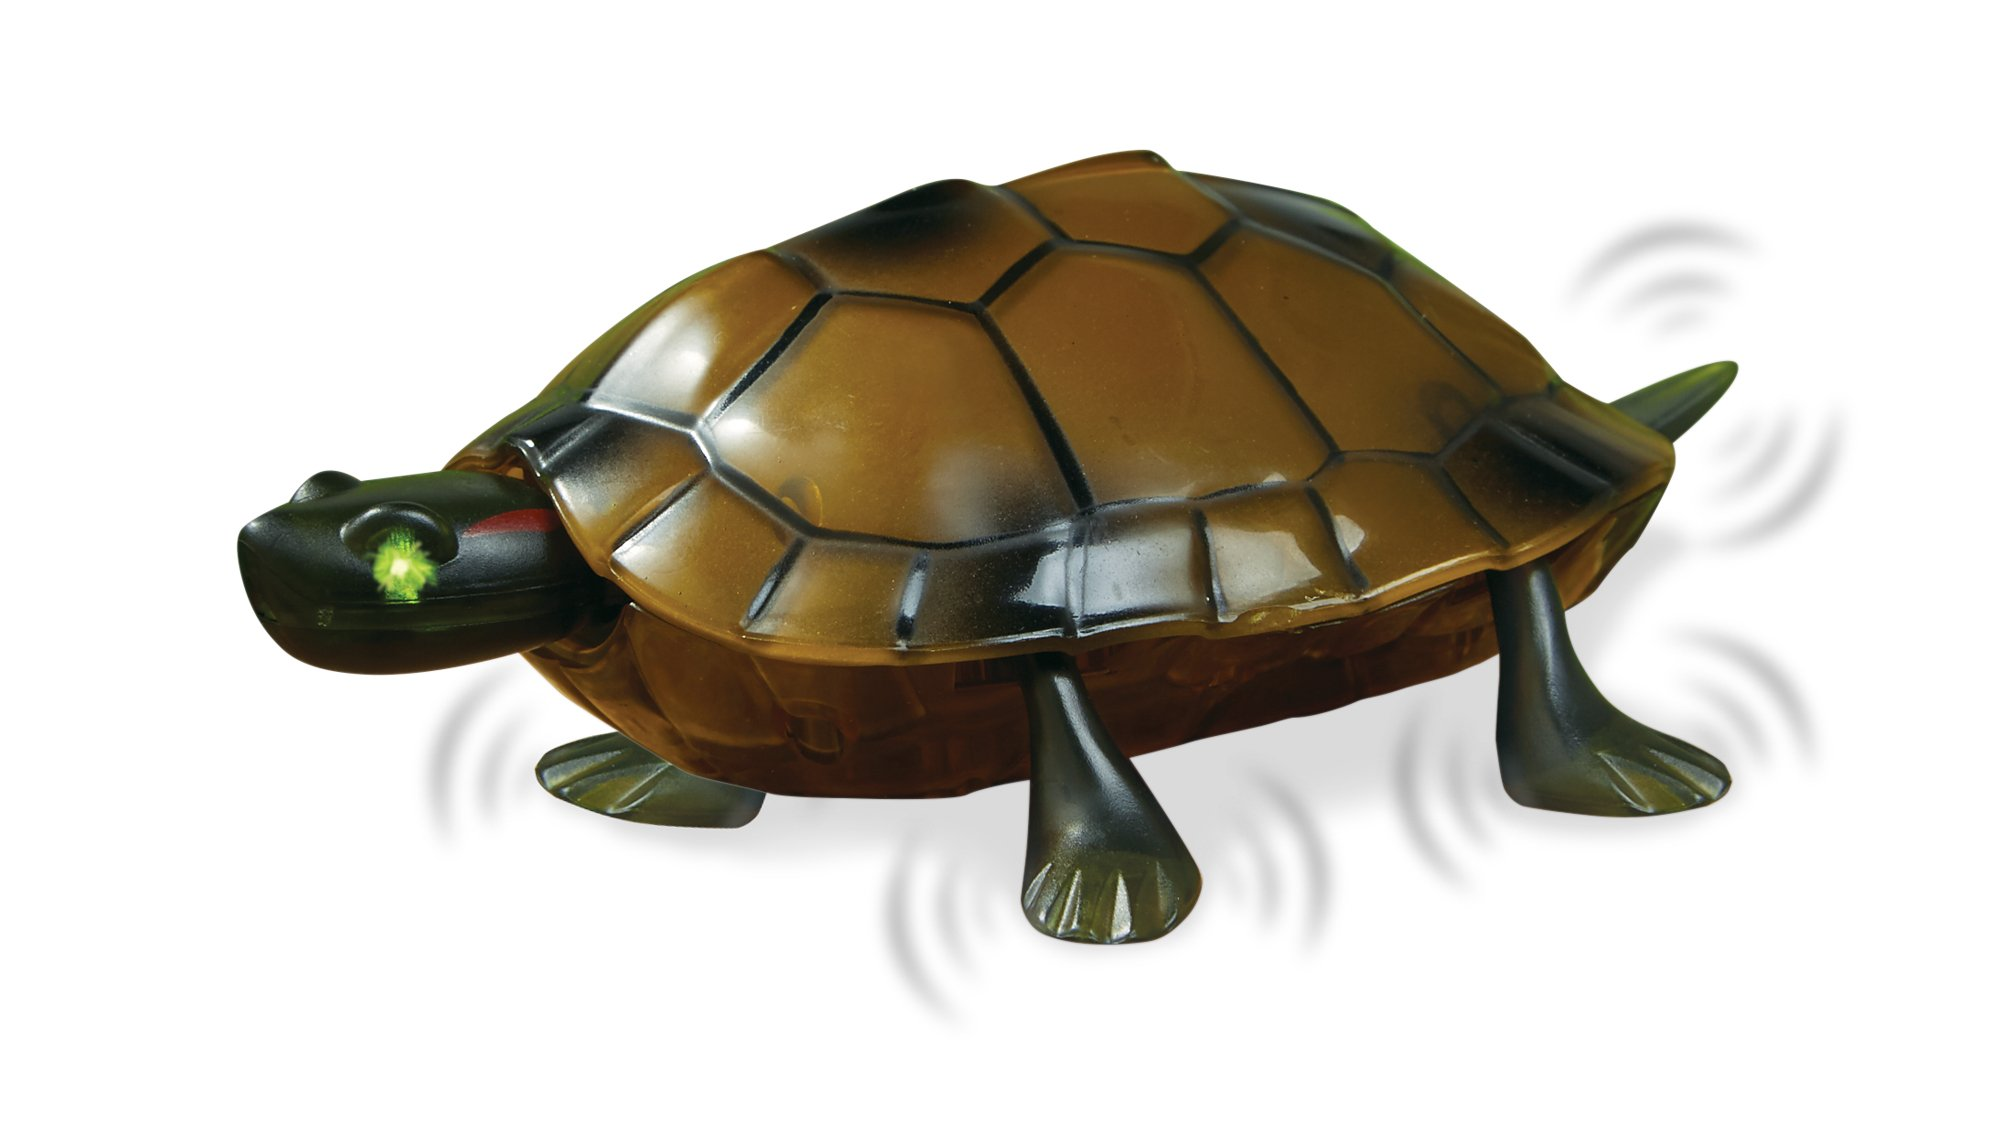 The Paragon Remote Control Turtle - RC Animal Toy, Turtle Toy for Kids and Adults by The Paragon (Image #2)